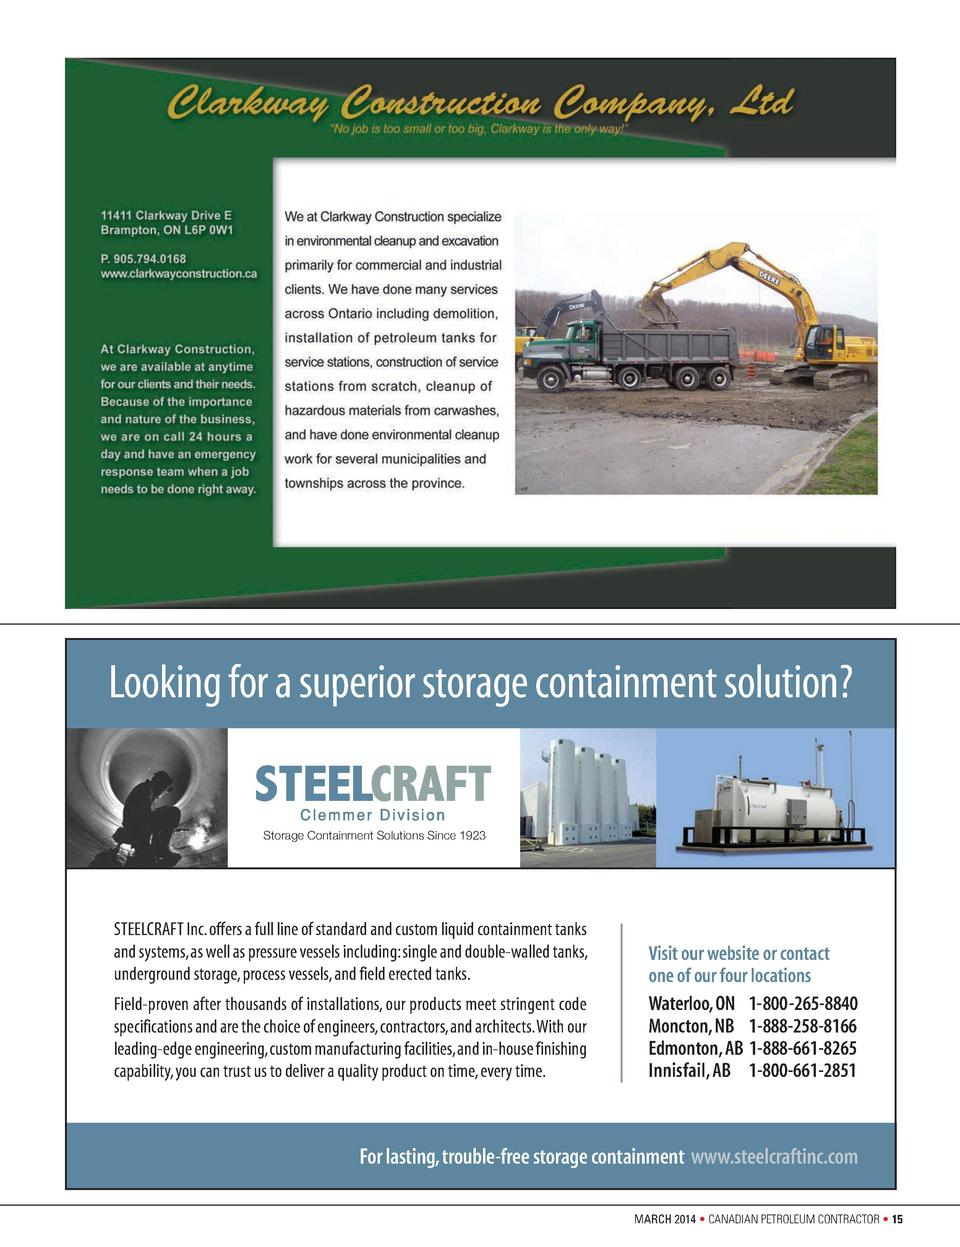 SteelcraftAd_0212 Layout 1  2 22 12  12 13 PM  Page 1  Looking for a superior storage containment solution  Storage Contai...